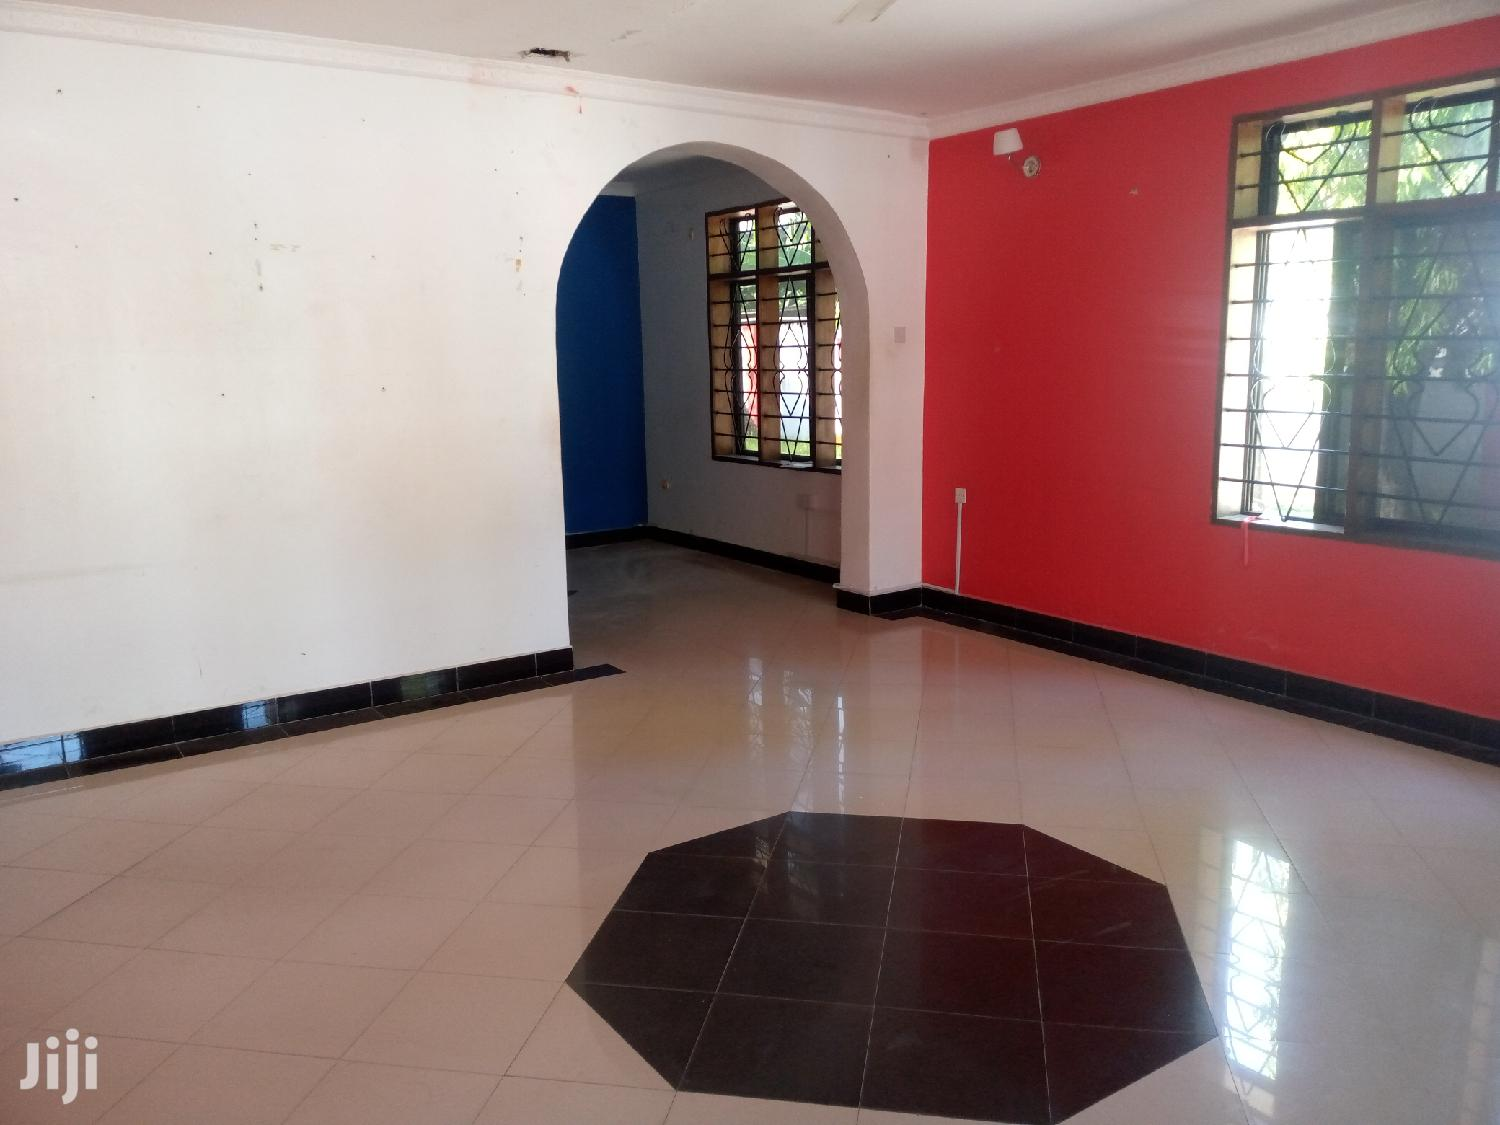 5bedrooms House For Rent At Mikocheni | Houses & Apartments For Rent for sale in Kinondoni, Dar es Salaam, Tanzania